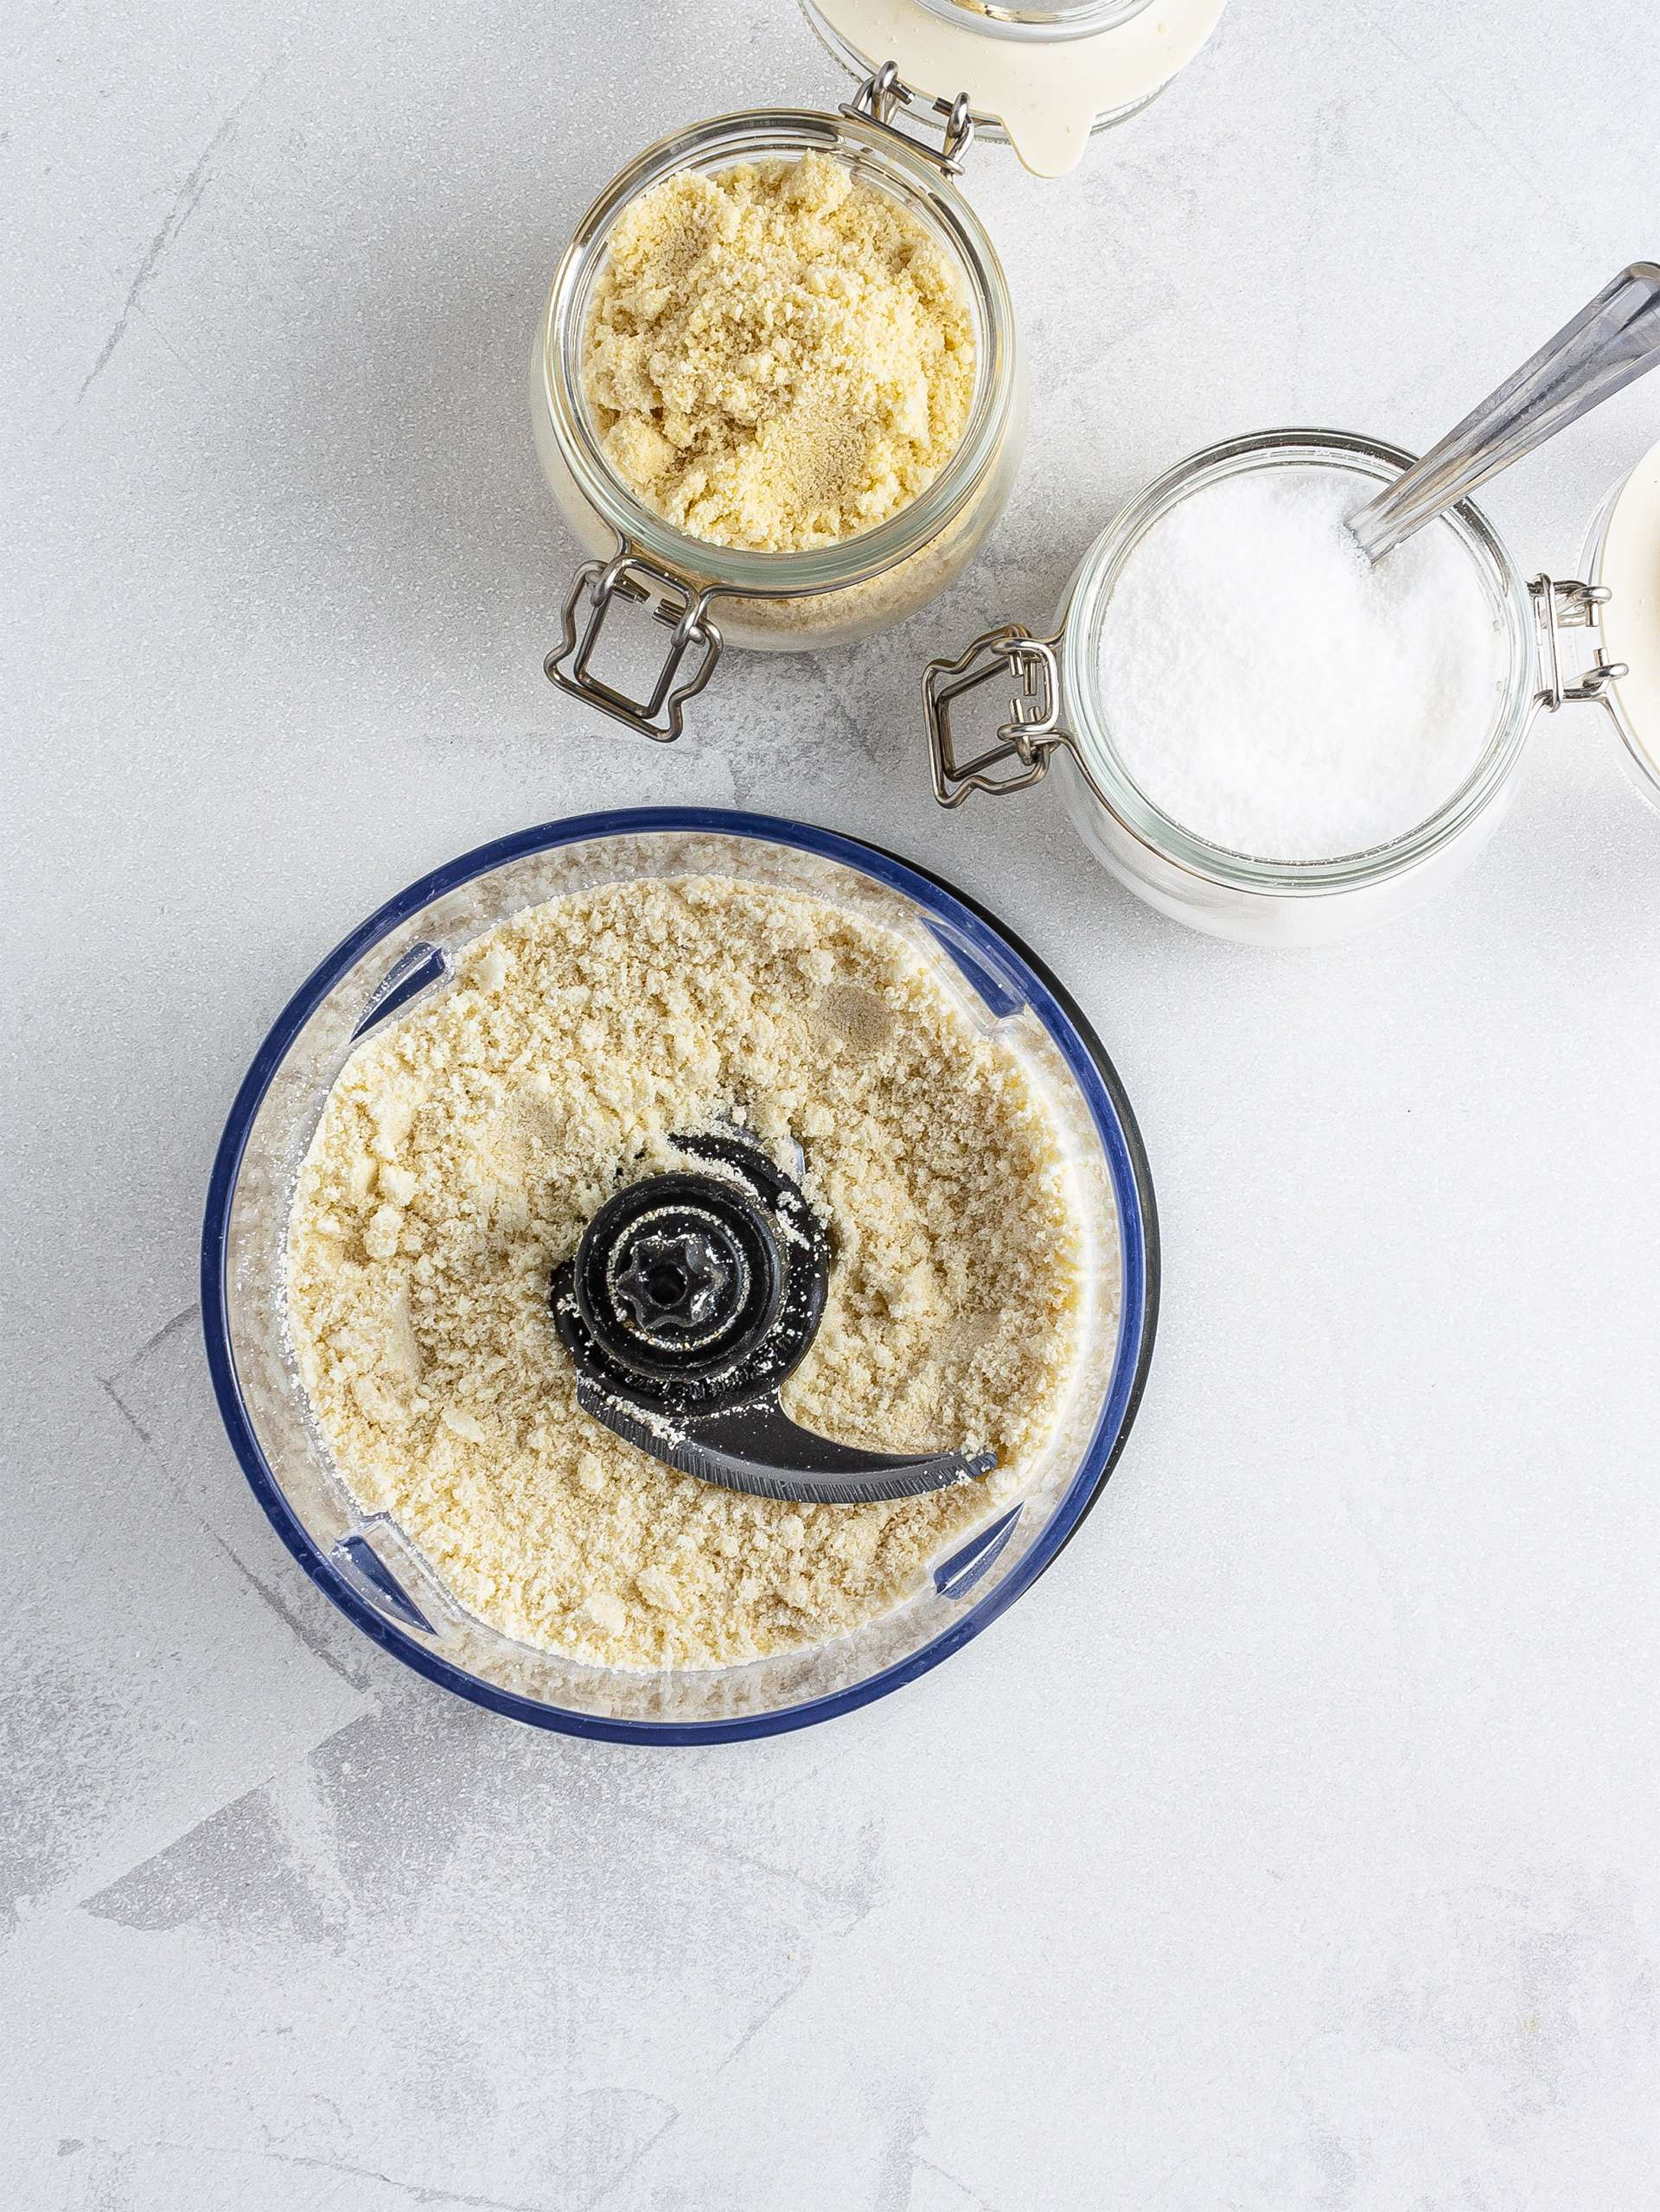 Almond flour and erythritol in a food processor